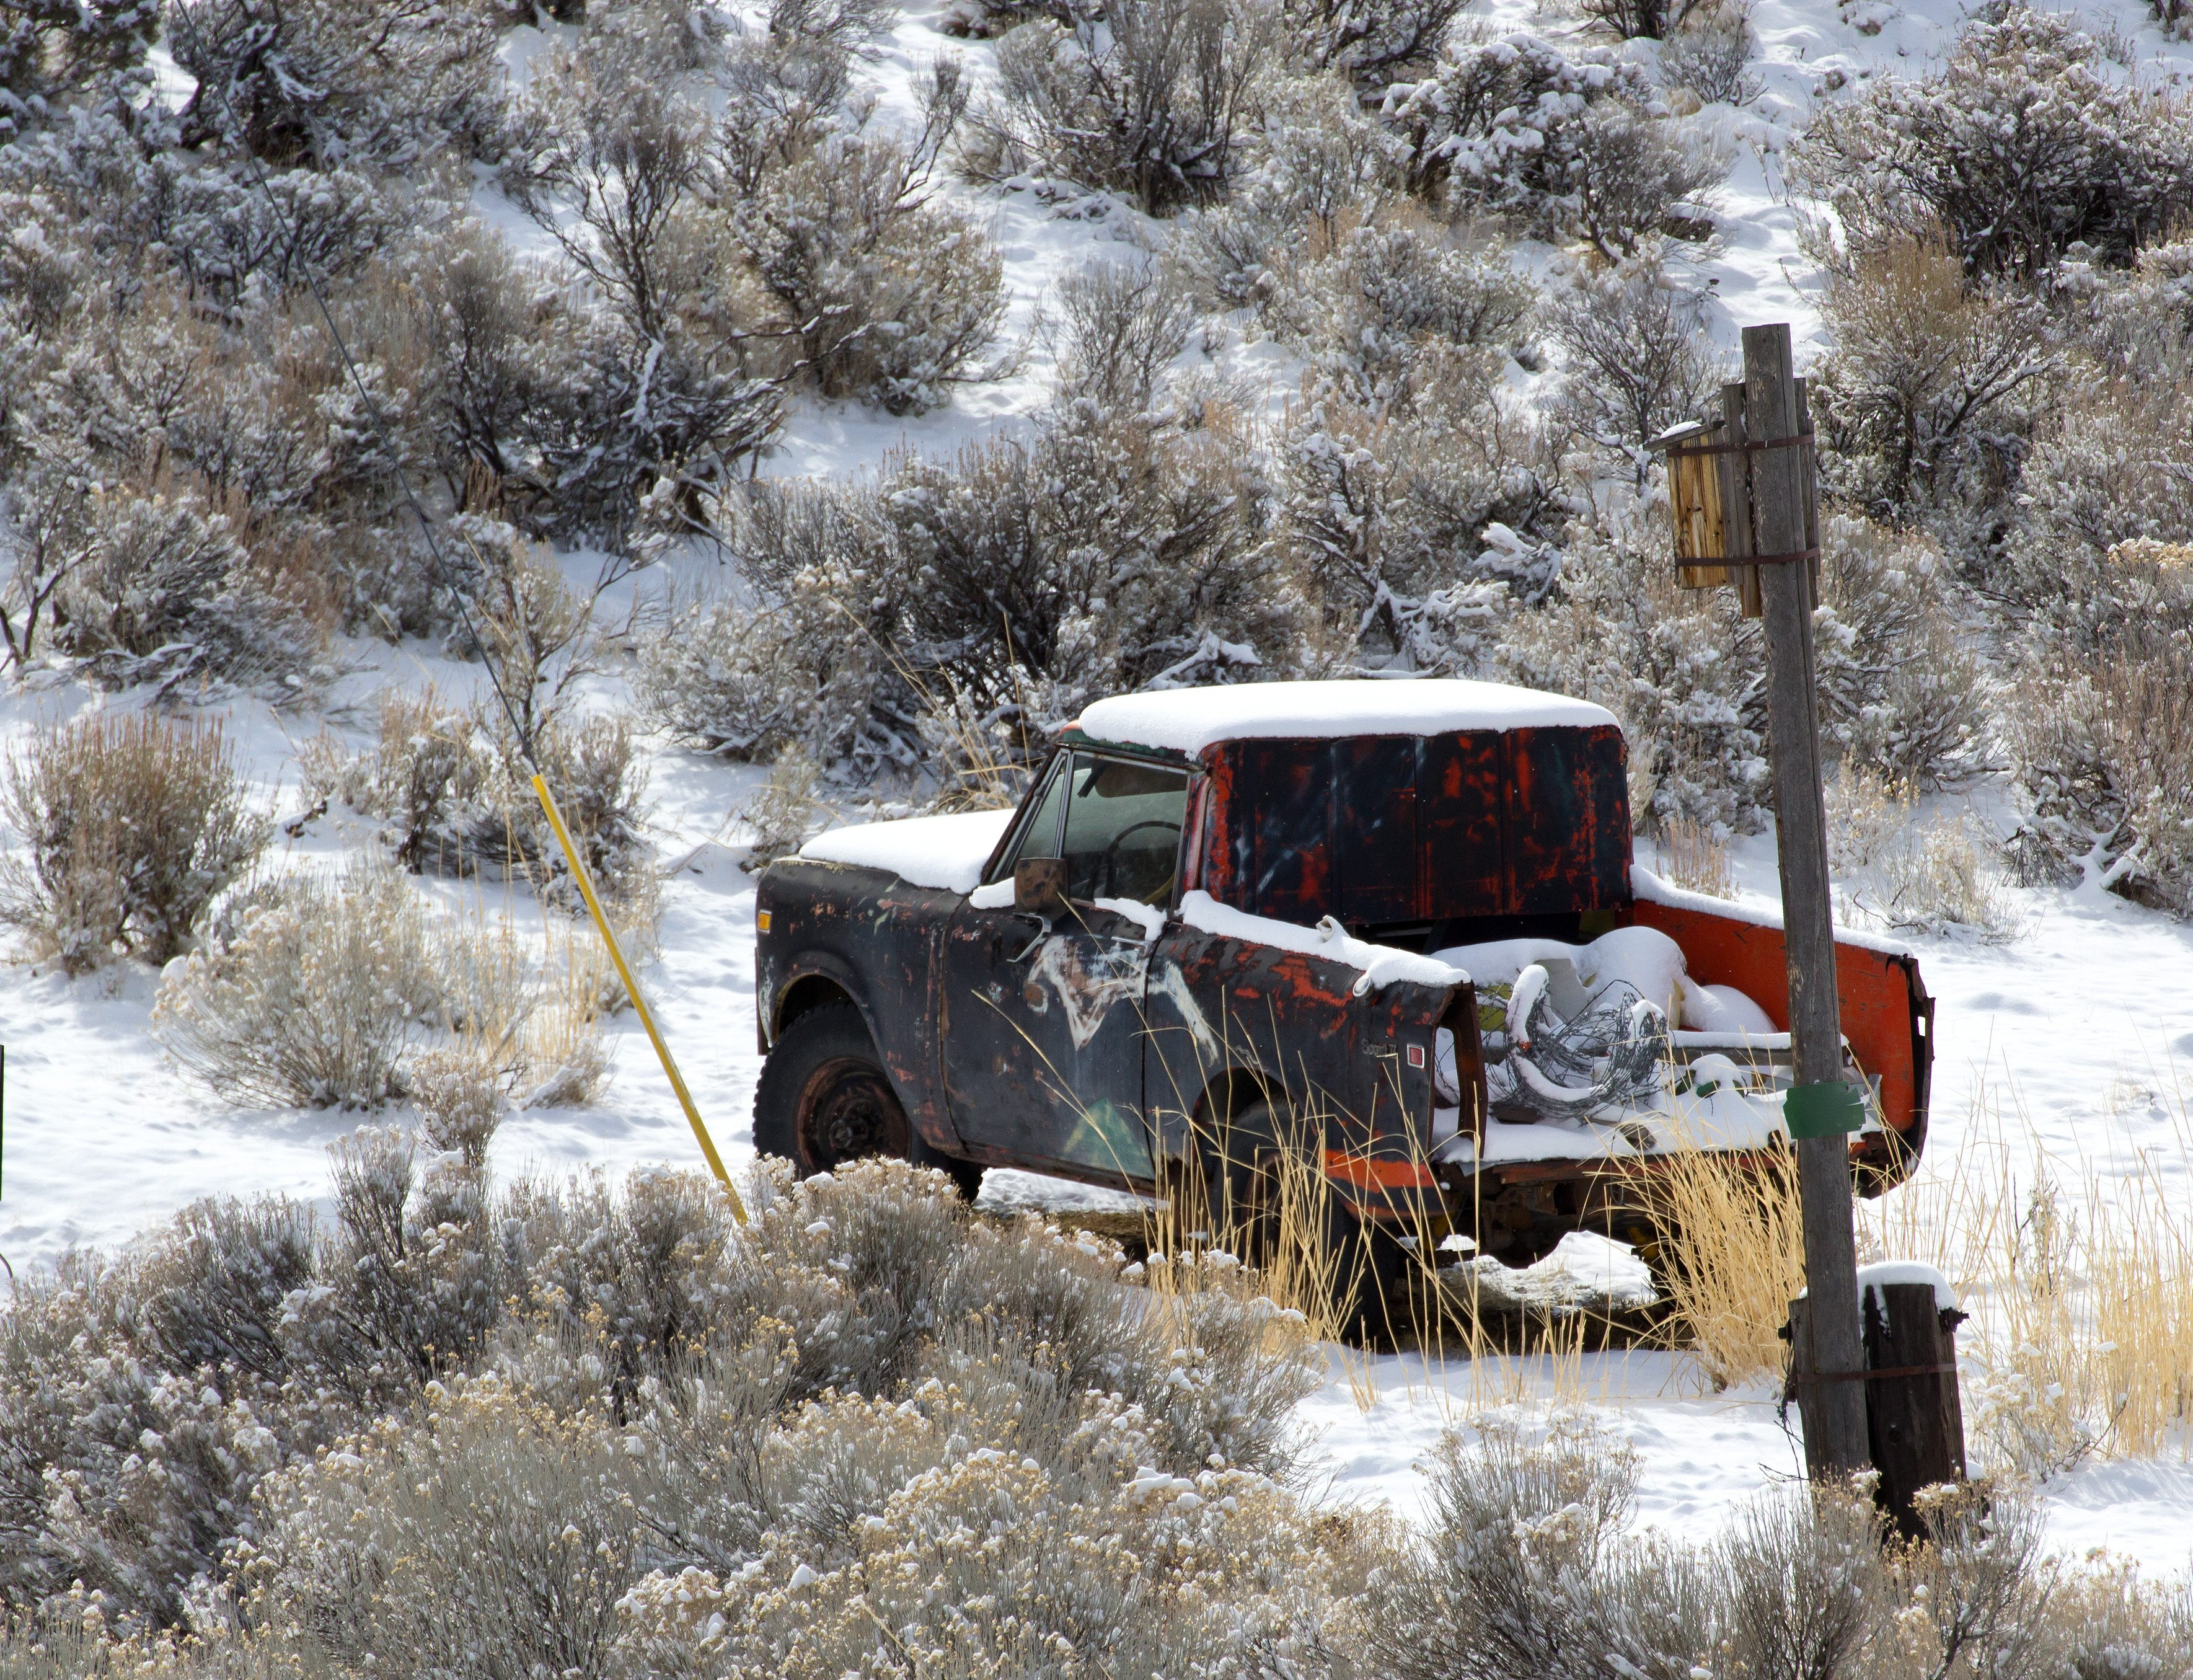 Tearing Up the Trails: Off-Roading Tips to Get You Started